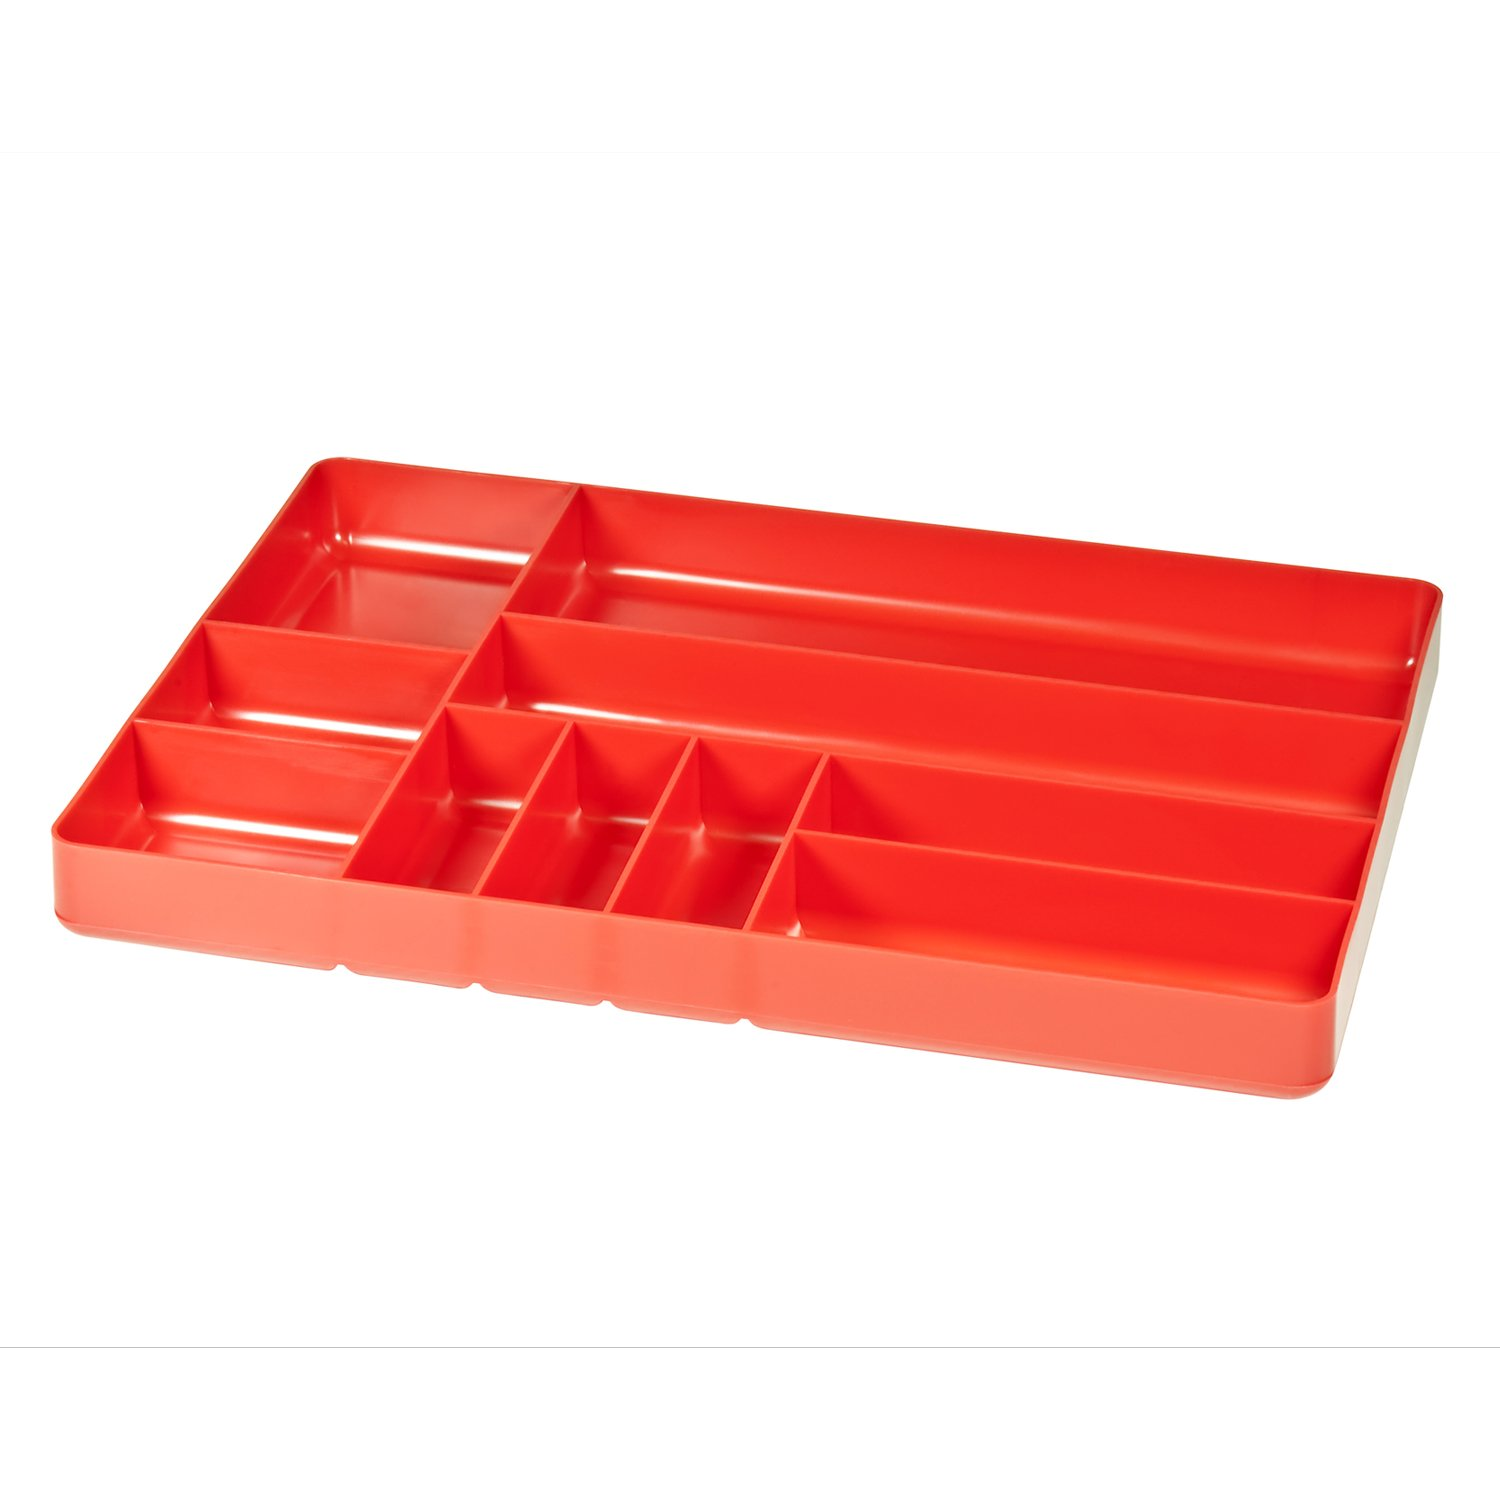 Ernst Manufacturing Organizer Tray, 10-Compartments, Blue 5012-Blue